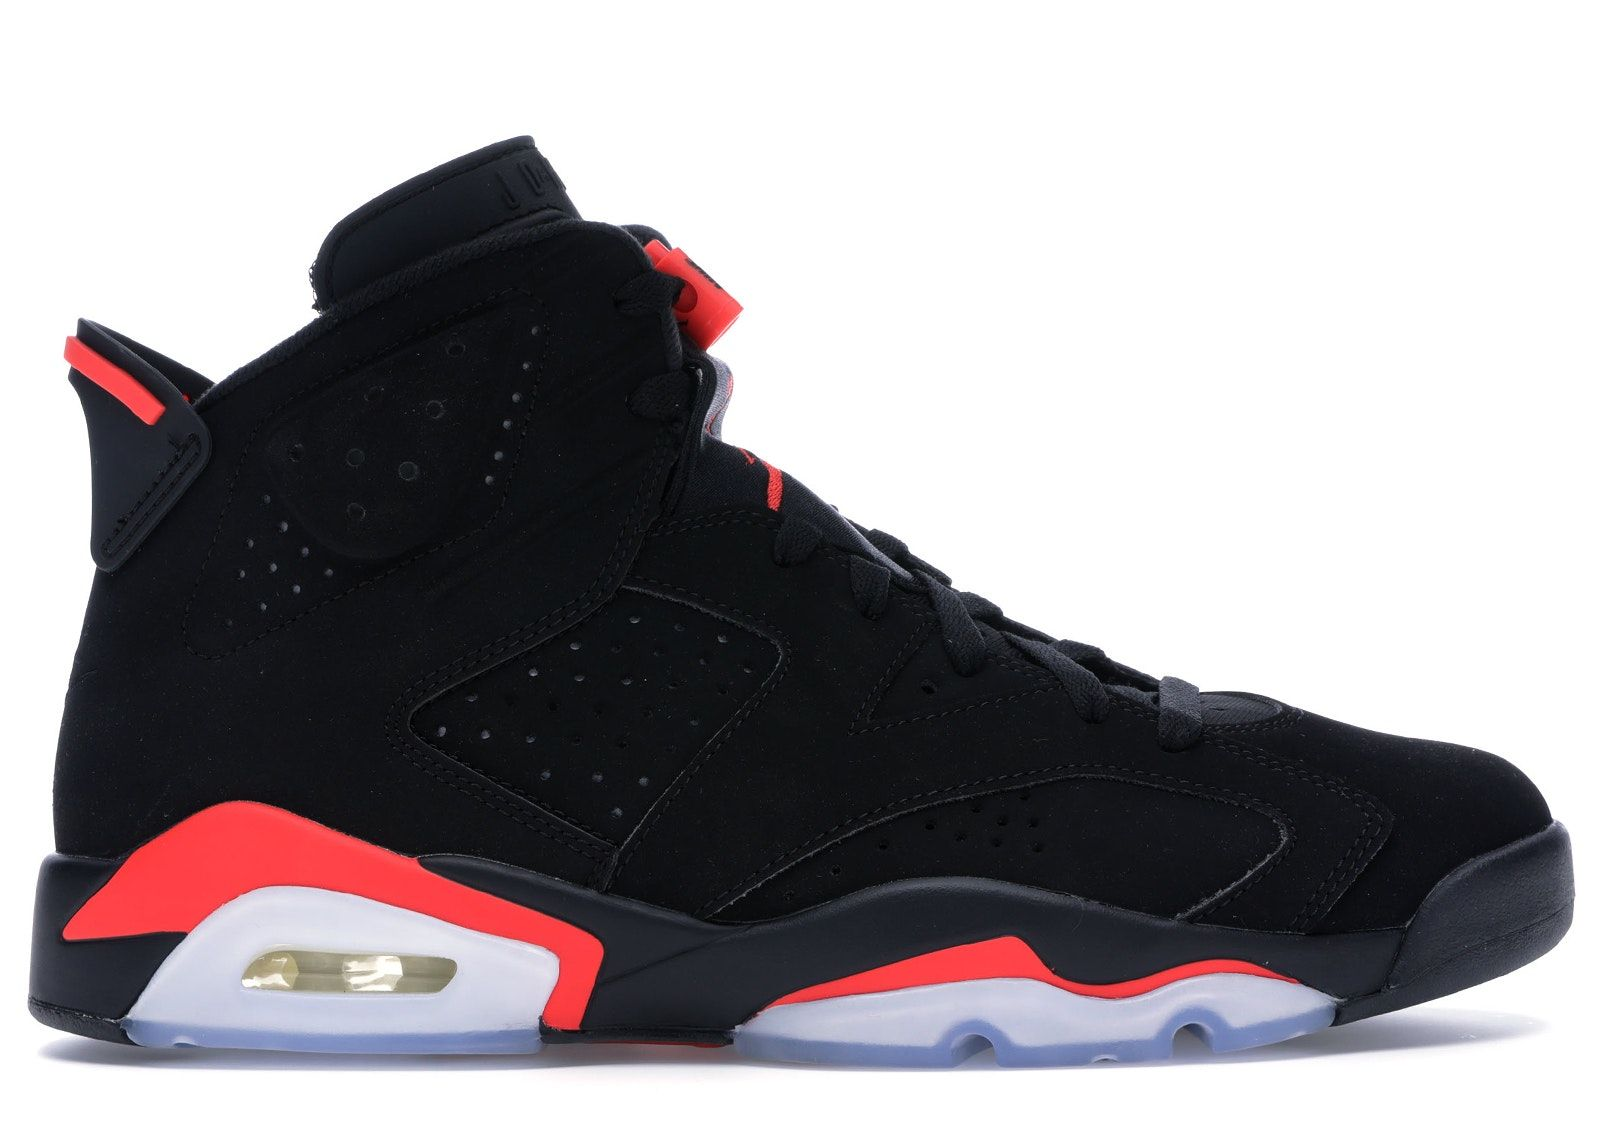 2fe22581 I just listed an Ask for the Jordan 6 Retro Black Infrared (2019) on StockX